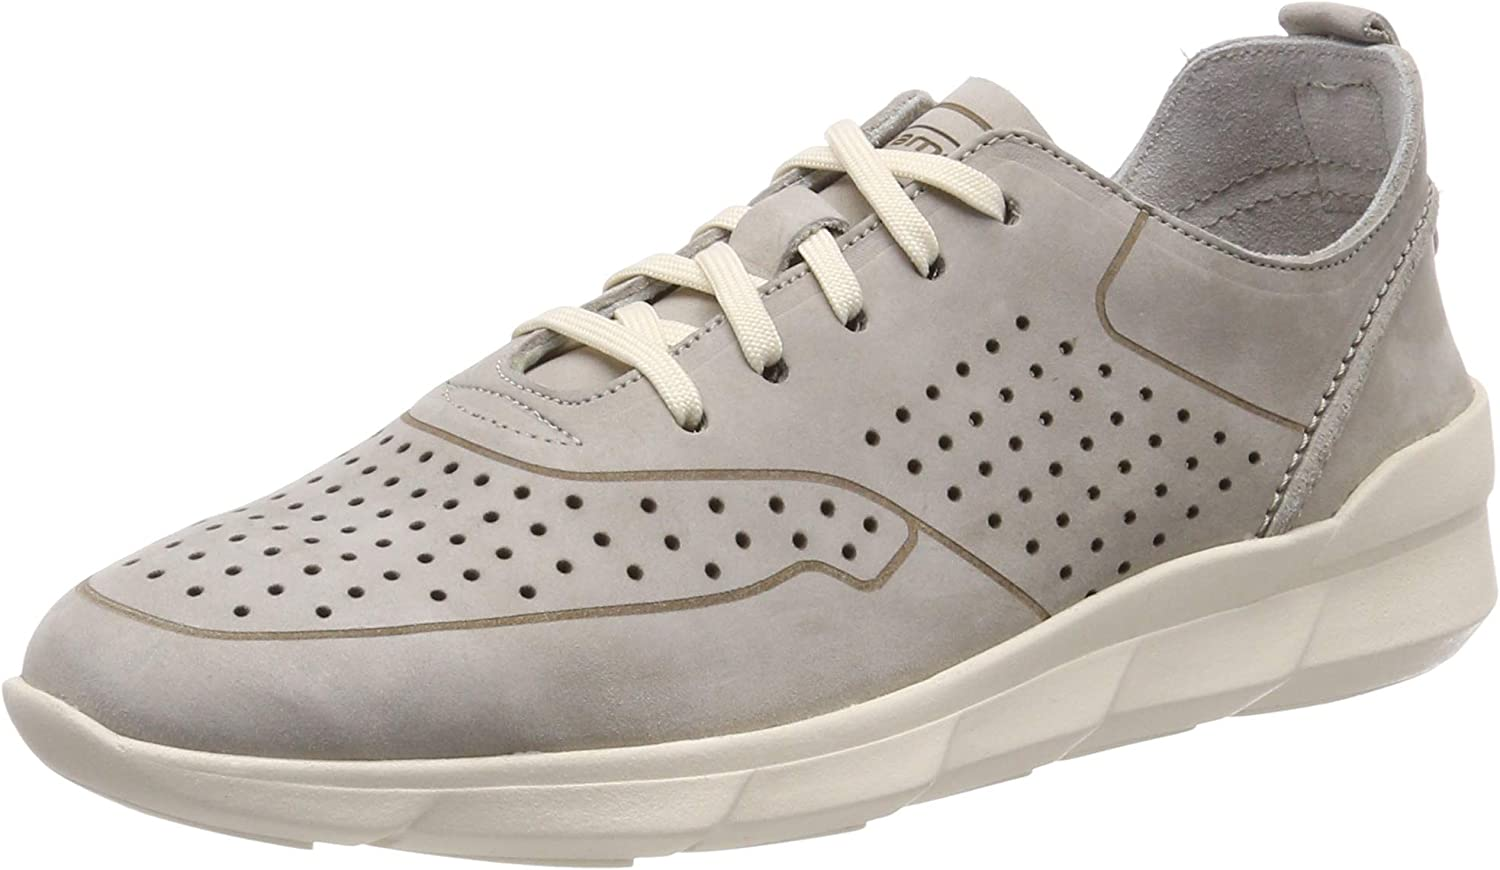 Camel Active Women's Emotion 70 Low-Top Sneakers